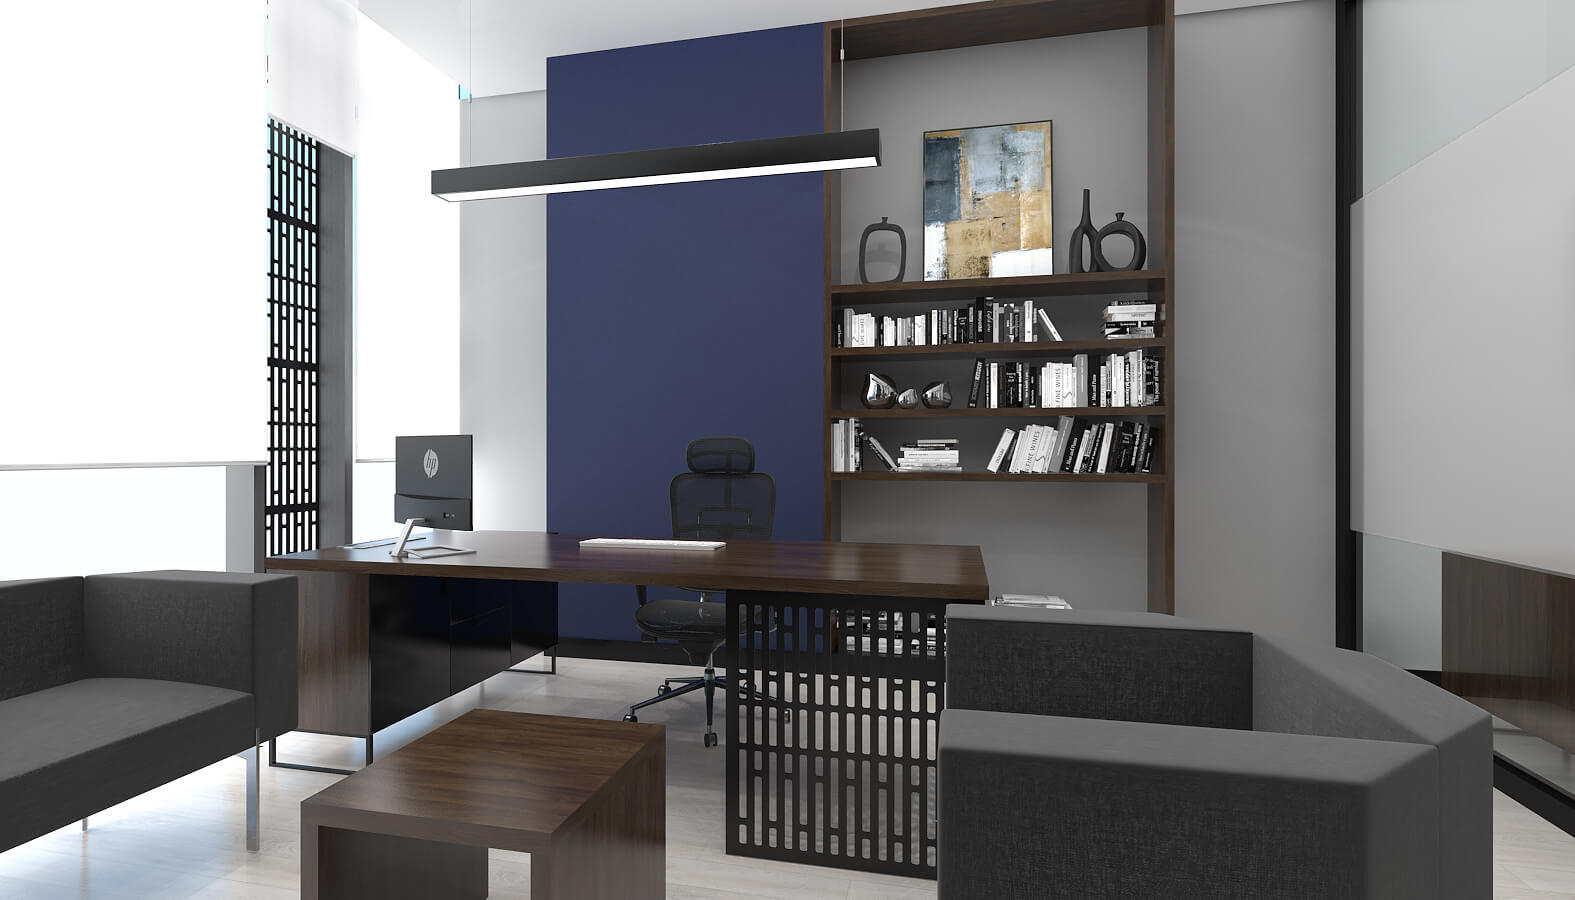 TV ON, Offices